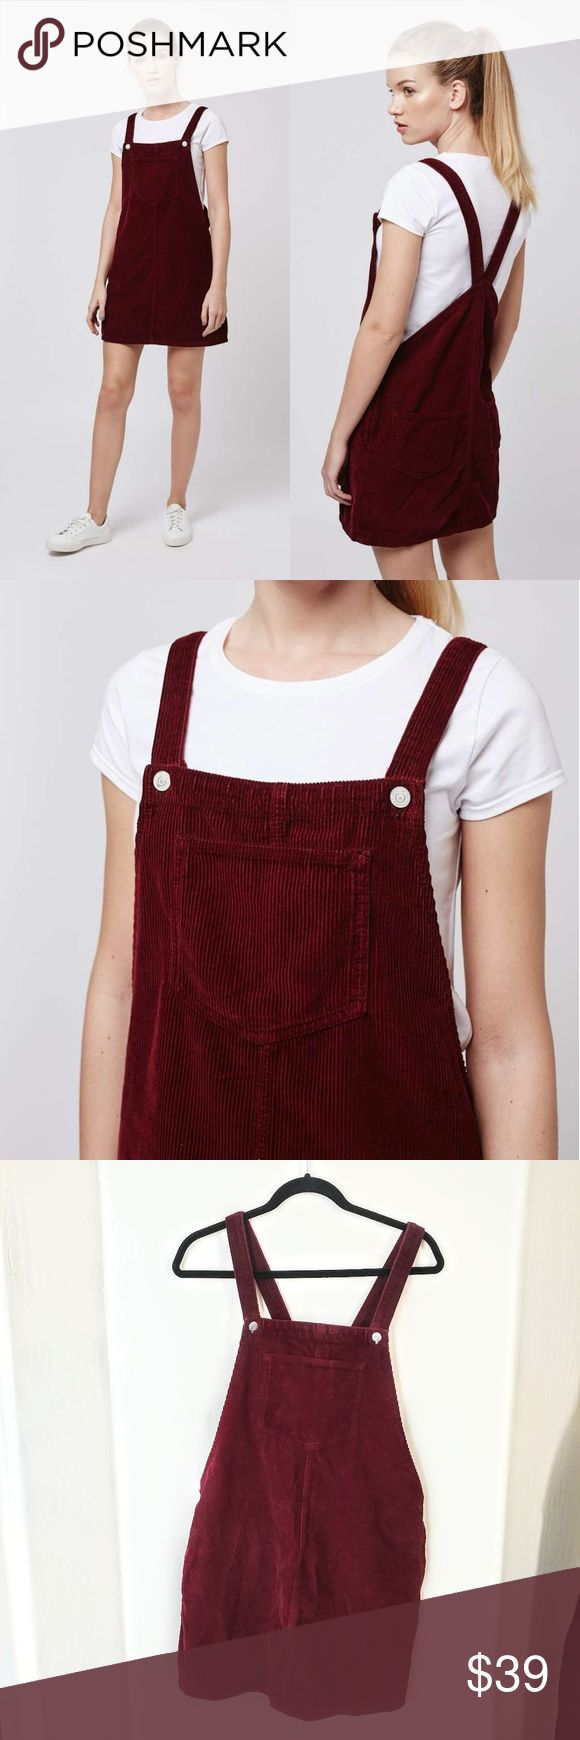 """Topshop TALL MOTO Cord Pinafore Dress Opt for an alternative to denim with this MOTO cord pinafore dress. In a clean, textured finish, there's a distinctive '70s edge to this throw-on style. Comes with practical patch pockets and button shoulder fastenings.  Condition: new without tag Size: 8 Bust flat 18.25"""" Length 33""""   100% Cotton. Machine wash.  Colour:BURGUNDY Topshop Dresses Mini"""